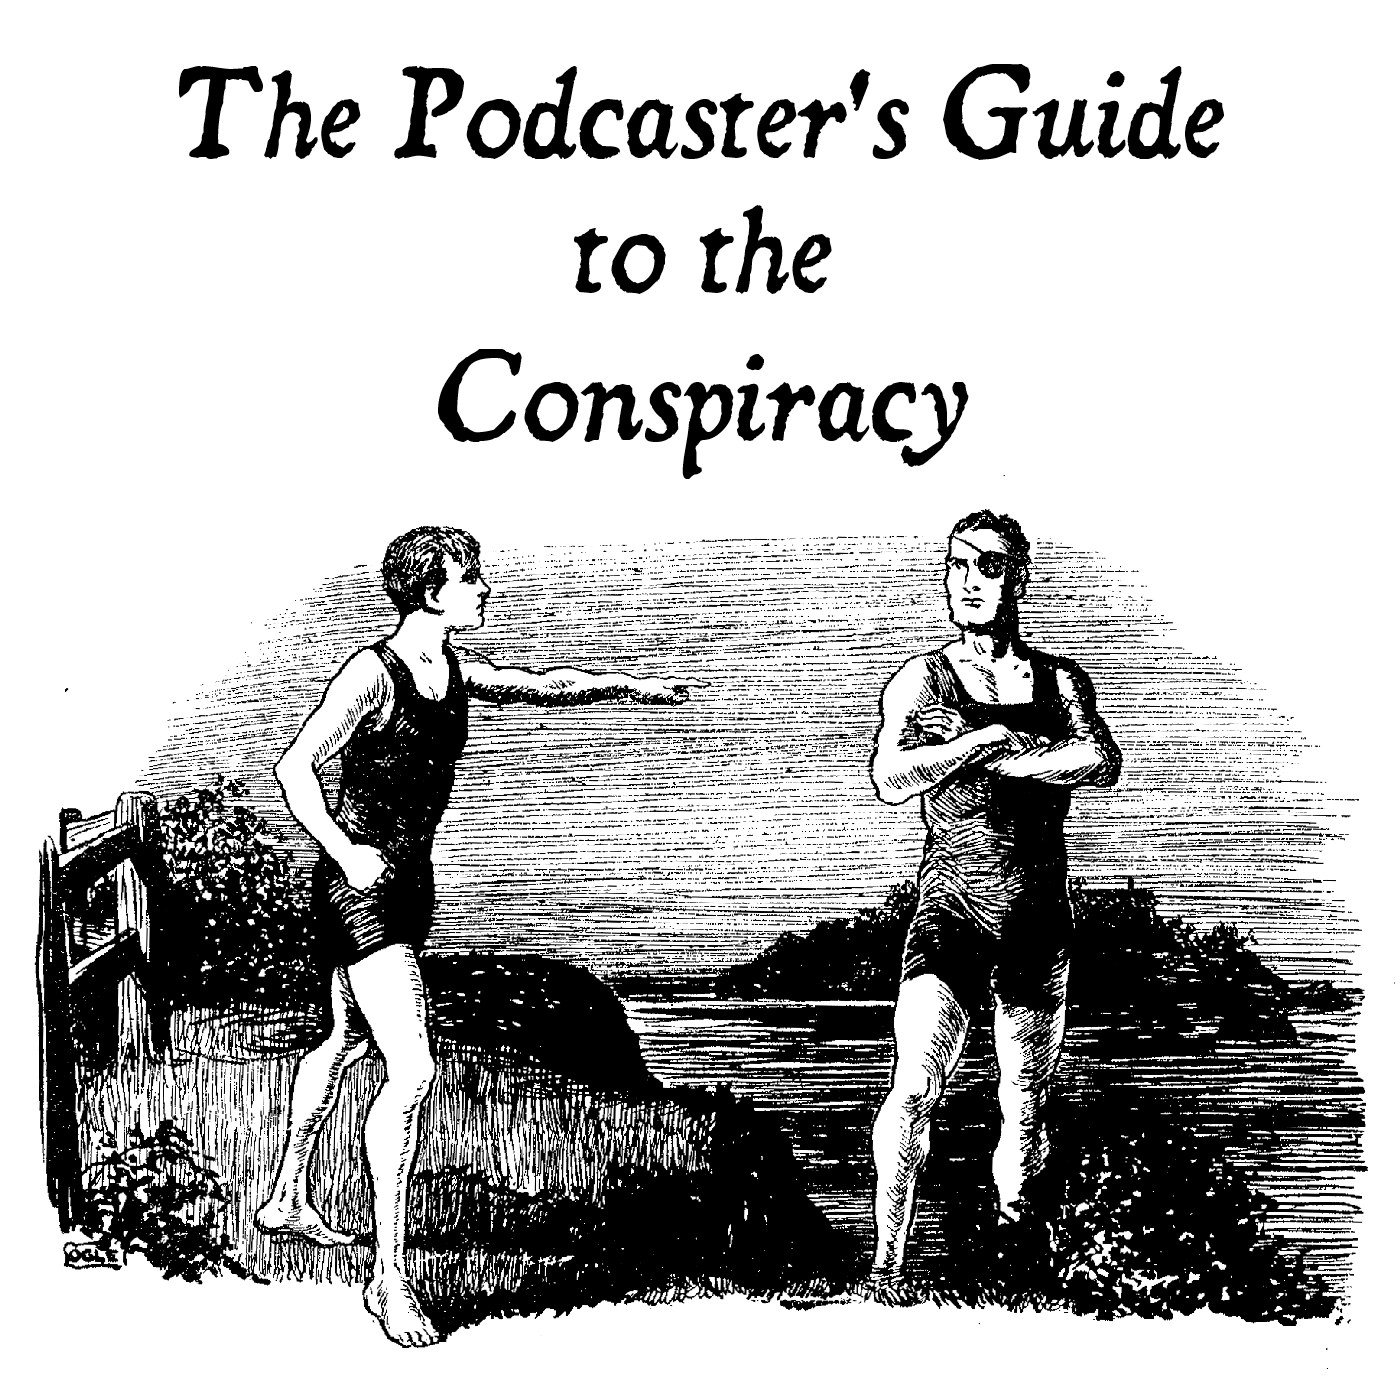 Episode 73 - The Conspiracy behind Kathryn S. Olmsted